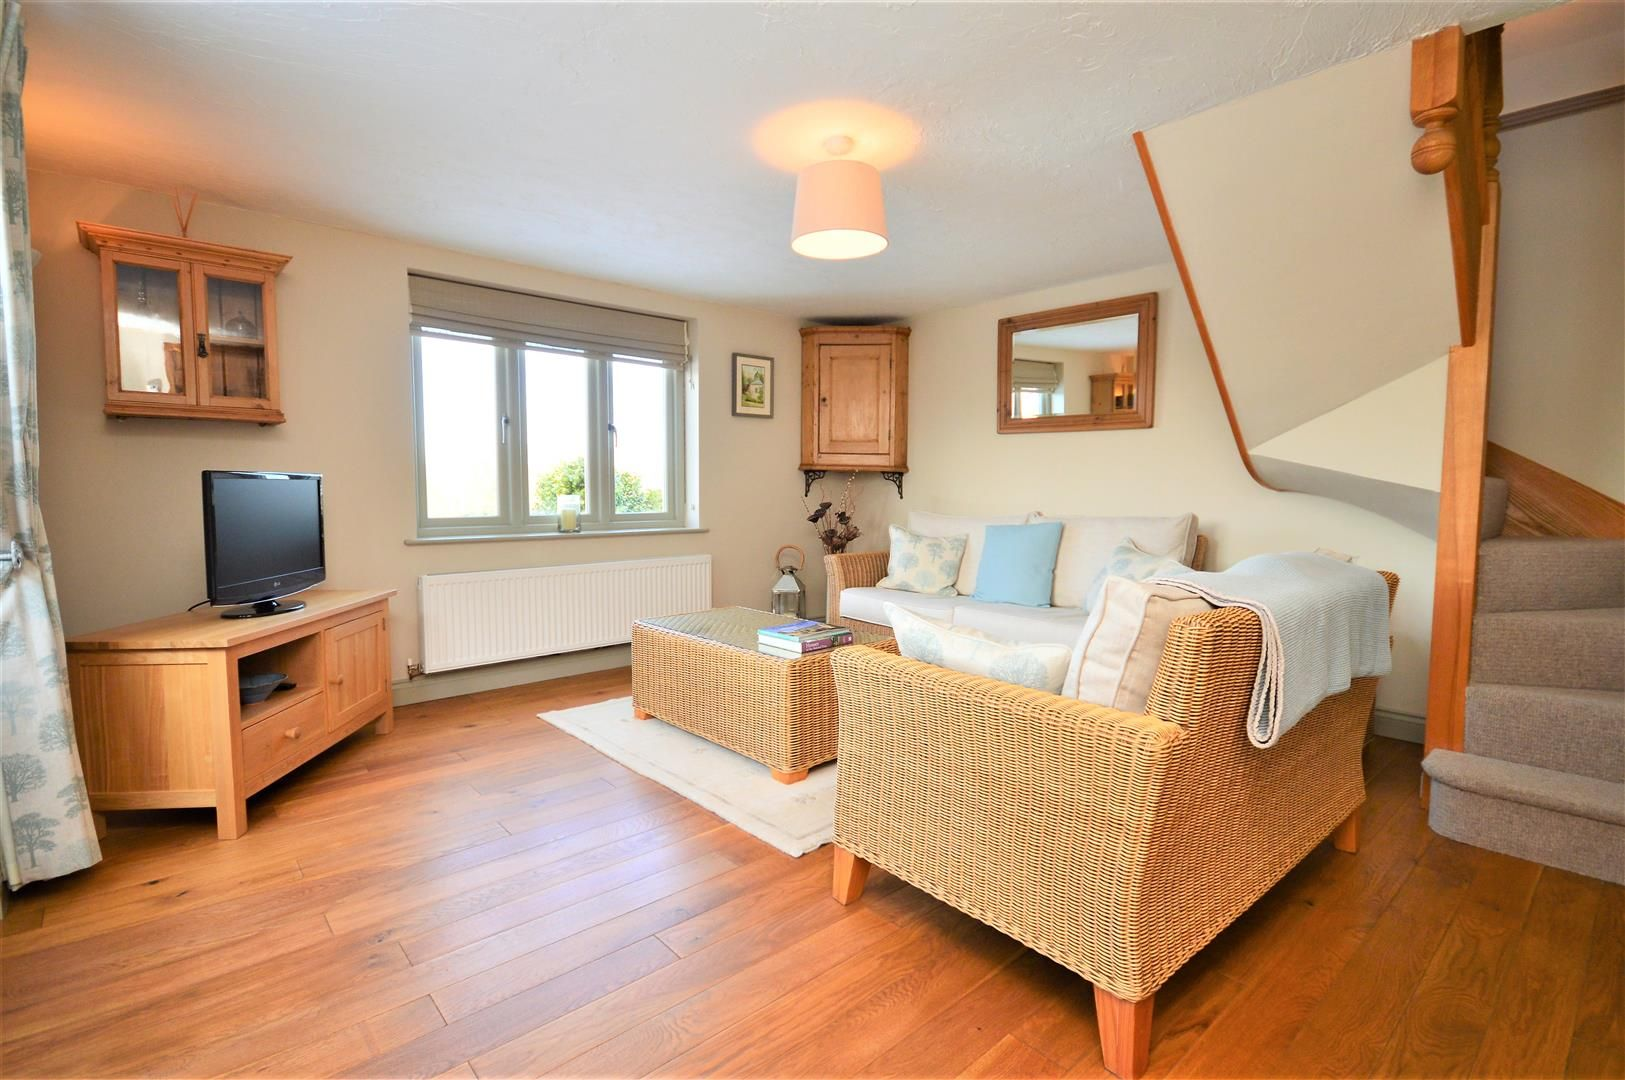 4 bed detached for sale in Marden 14